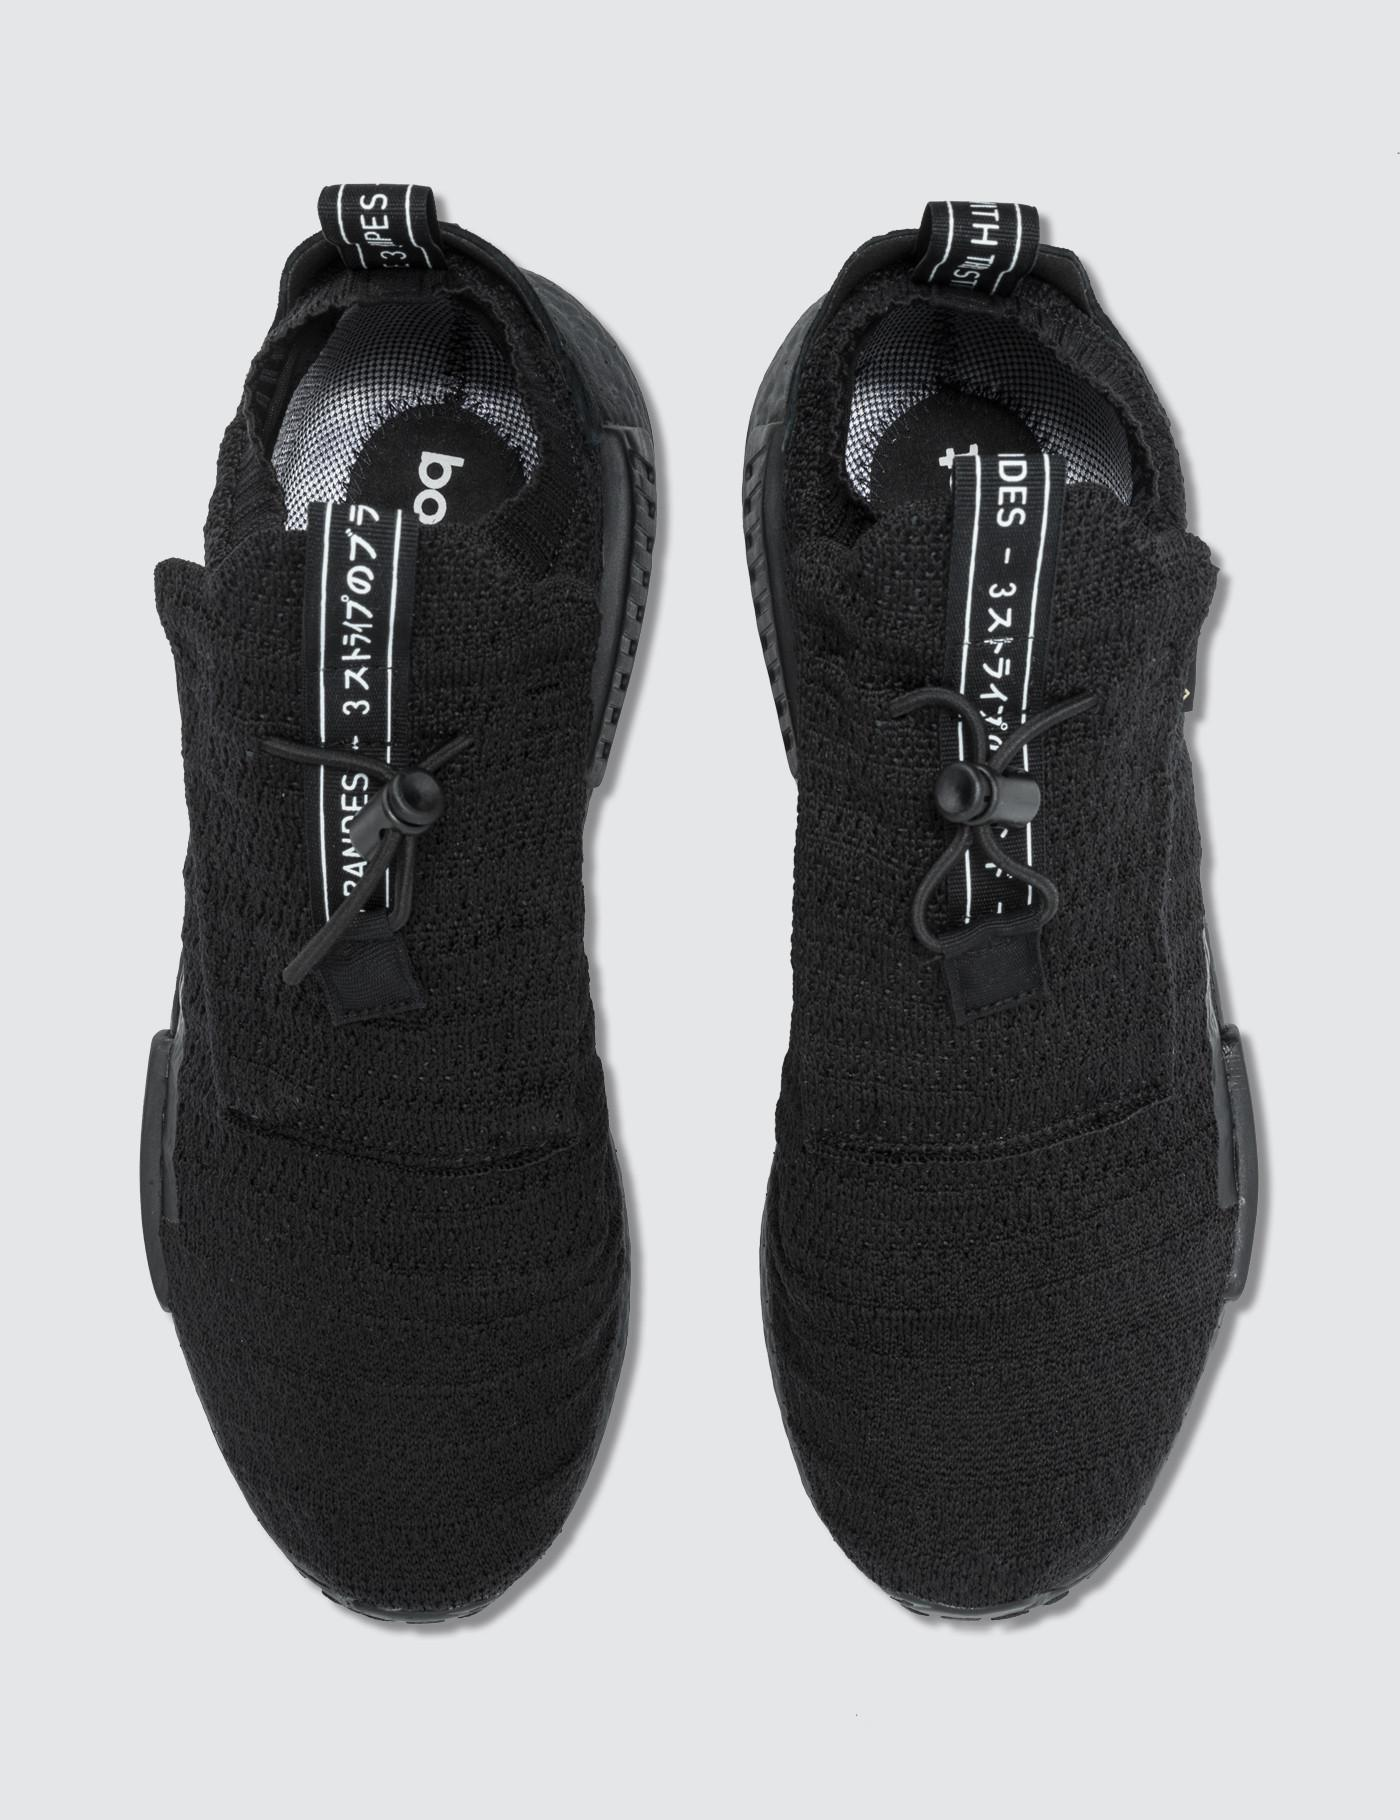 a10568a4c4aac5 Gallery. Previously sold at  HBX · Men s Nike Vandal Men s Adidas Zx Flux  Primeknit ...